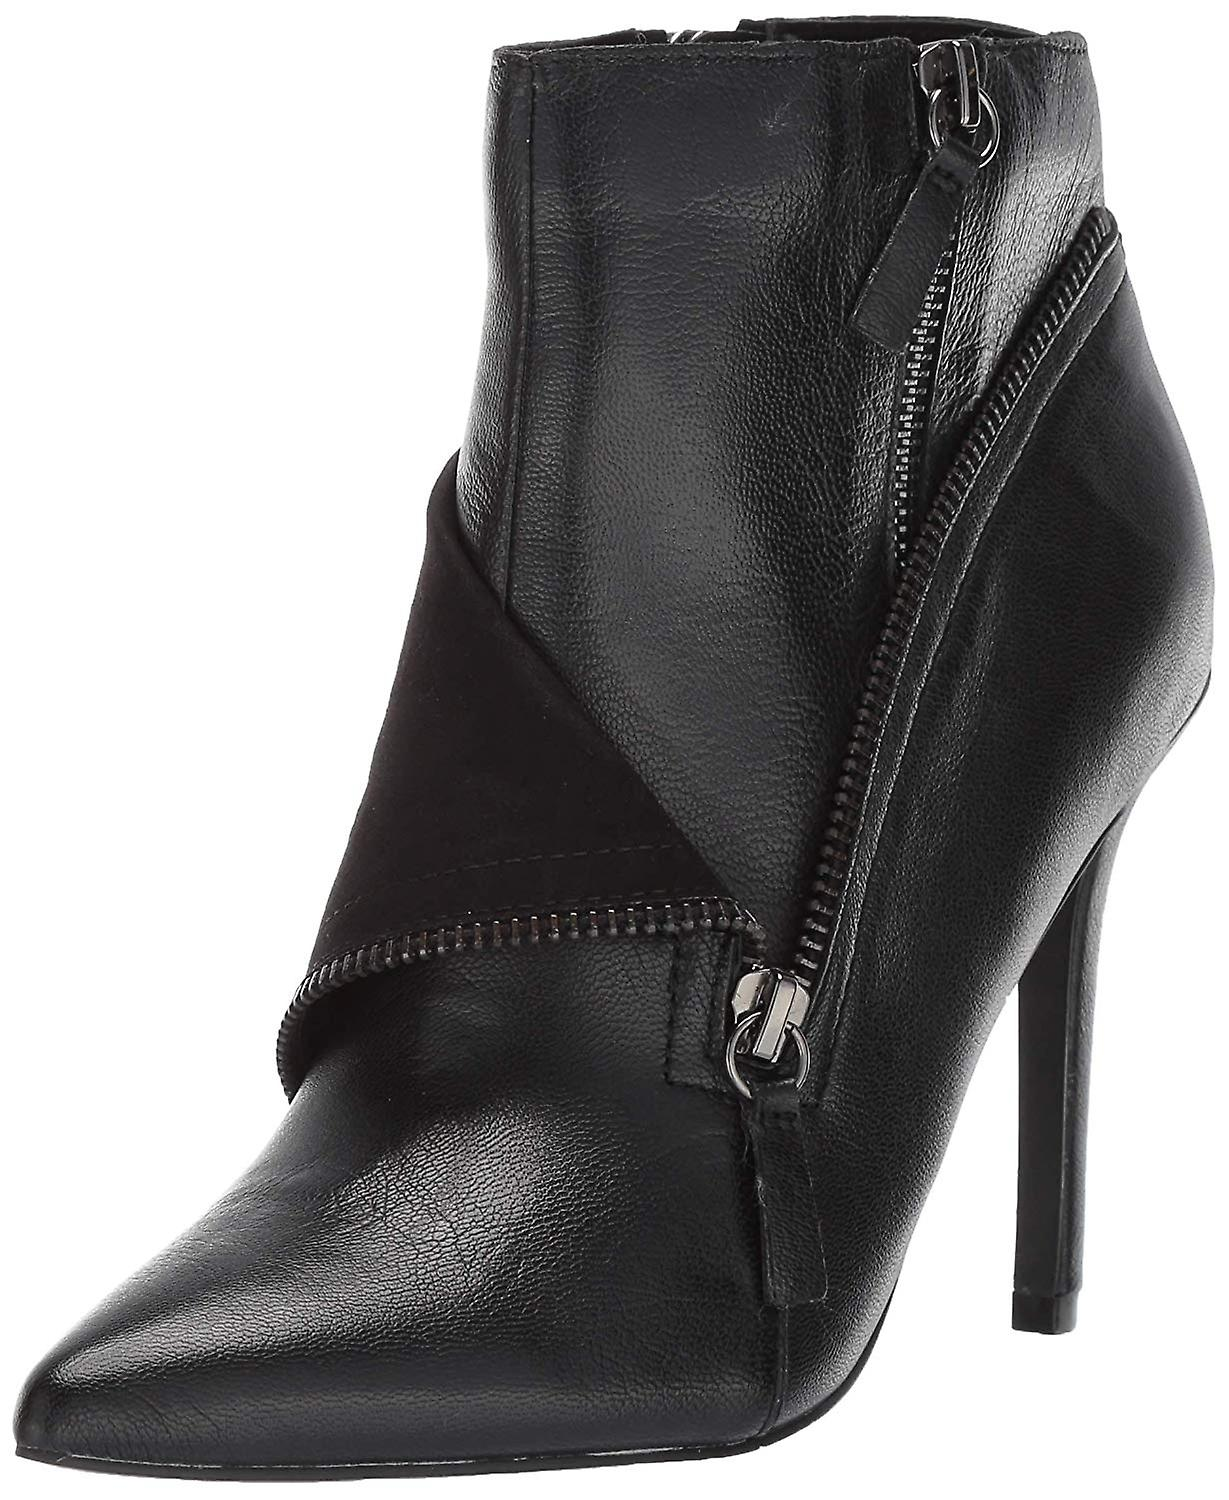 Fergie Womens Admire Leather Pointed Toe Ankle Fashion Boots cL3cW